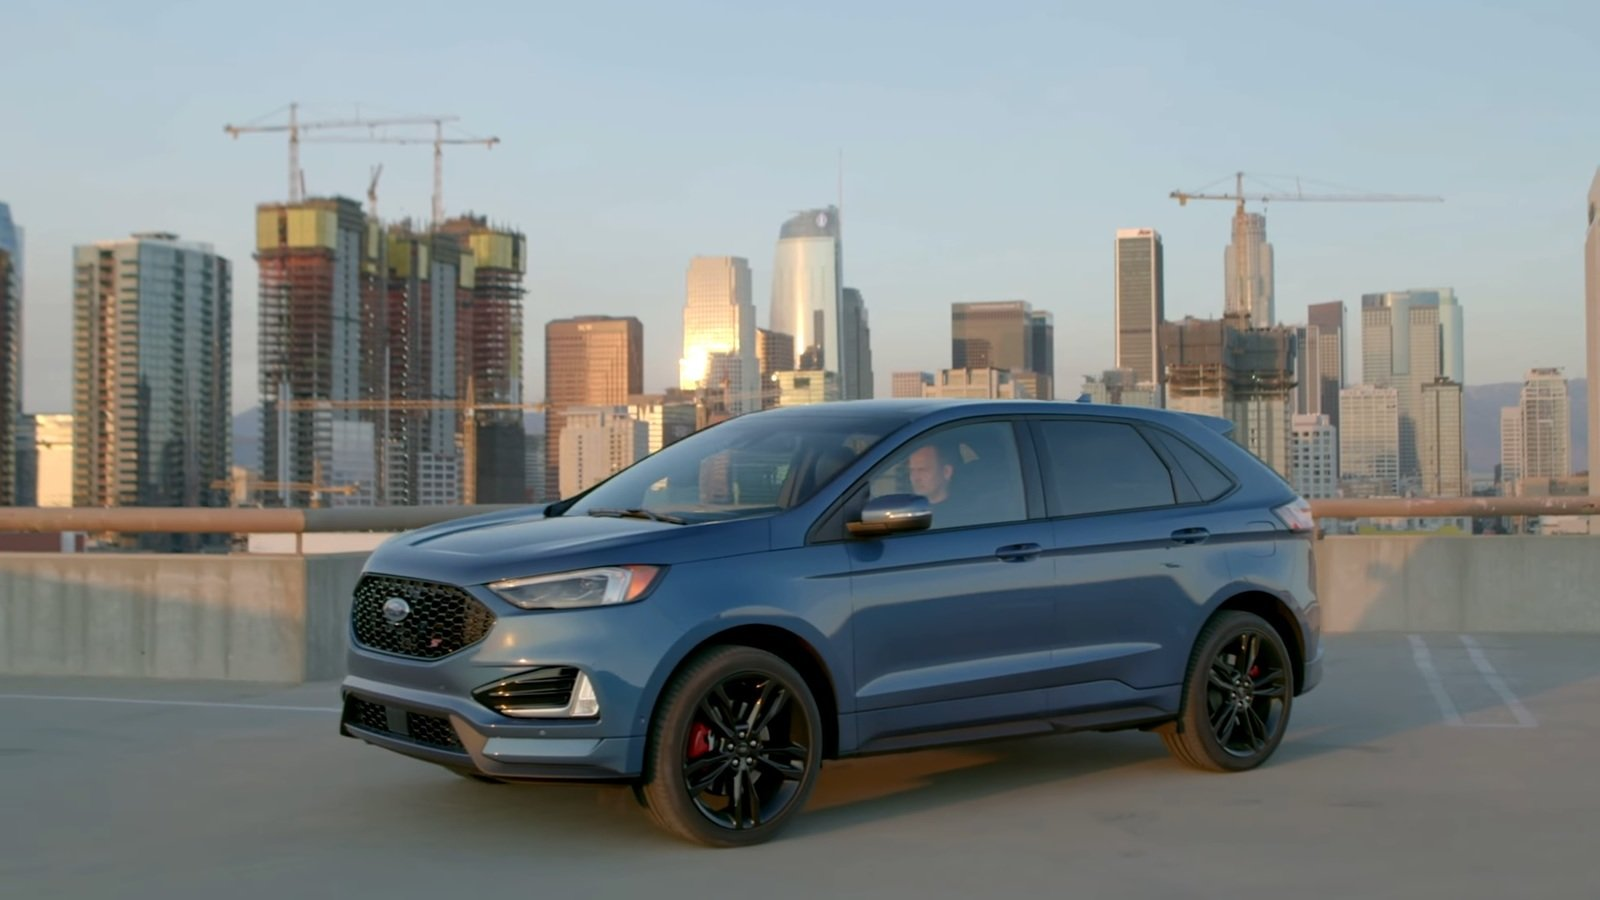 Photos and specifications of Ford Edge ST 2019 Sport Photos and specifications of Ford Edge ST 2019 Sport  D8 A7 D9 84 D8 AA D8 B5 D9 85 D9 8A D9 85  D8 A7 D9 84 D8 AC D8 A7 D9 86 D8 A8 D9 8A  D9 84 D9 84 D8 B3 D9 8A D8 A7 D8 B1 D8 A9  D9 81 D9 88 D8 B1 D8 AF  D8 A7 D9 8A D8 AF D8 AC ST 2019